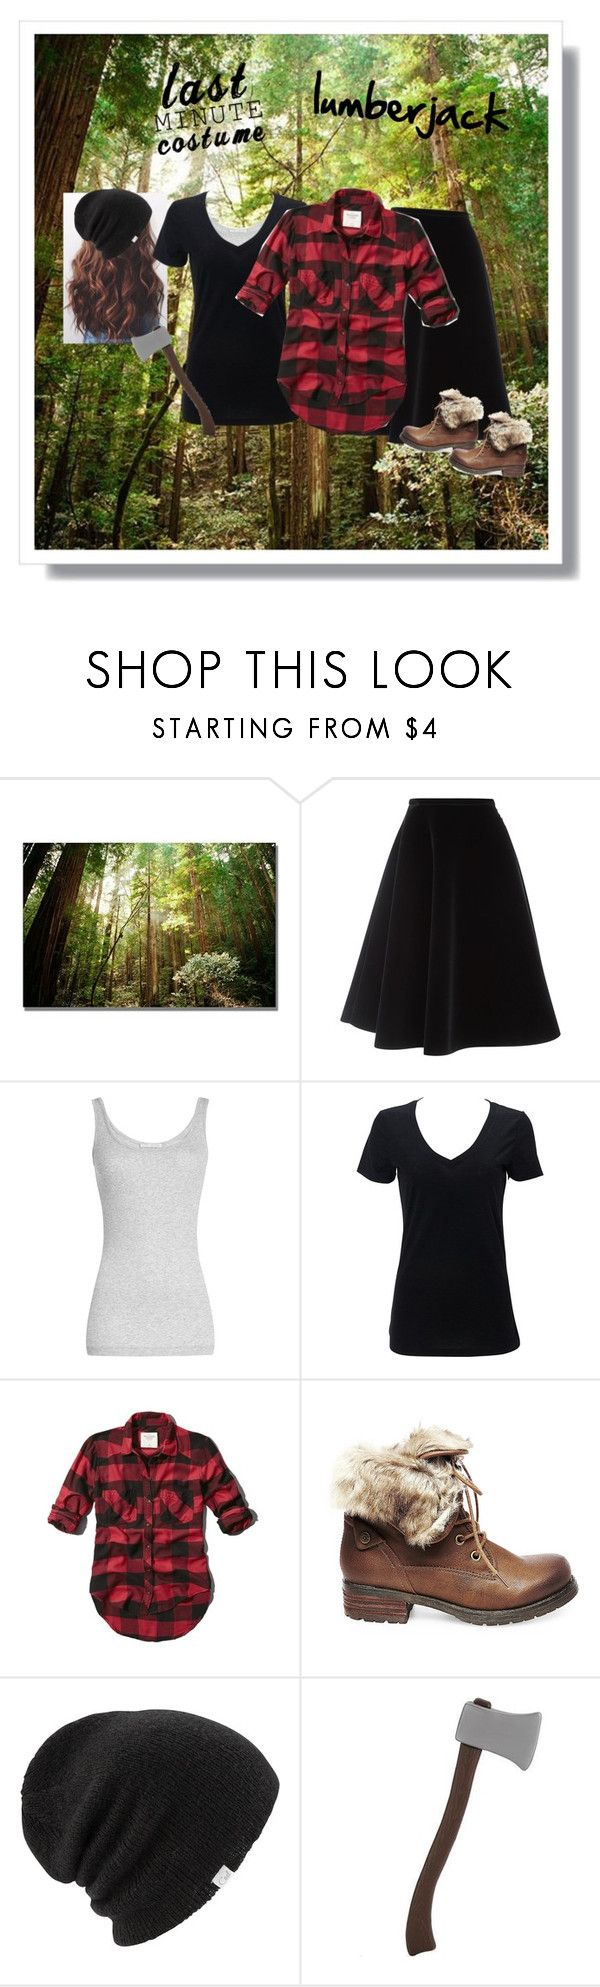 """Lumberjack costume 🌲"" by dominiquemcain ❤ liked on Polyvore featuring Trademark Fine Art, N°21, Vince, Simplex Apparel, Abercrombie & Fitch, Steve Madden, Coal, country and lastminutecostume"